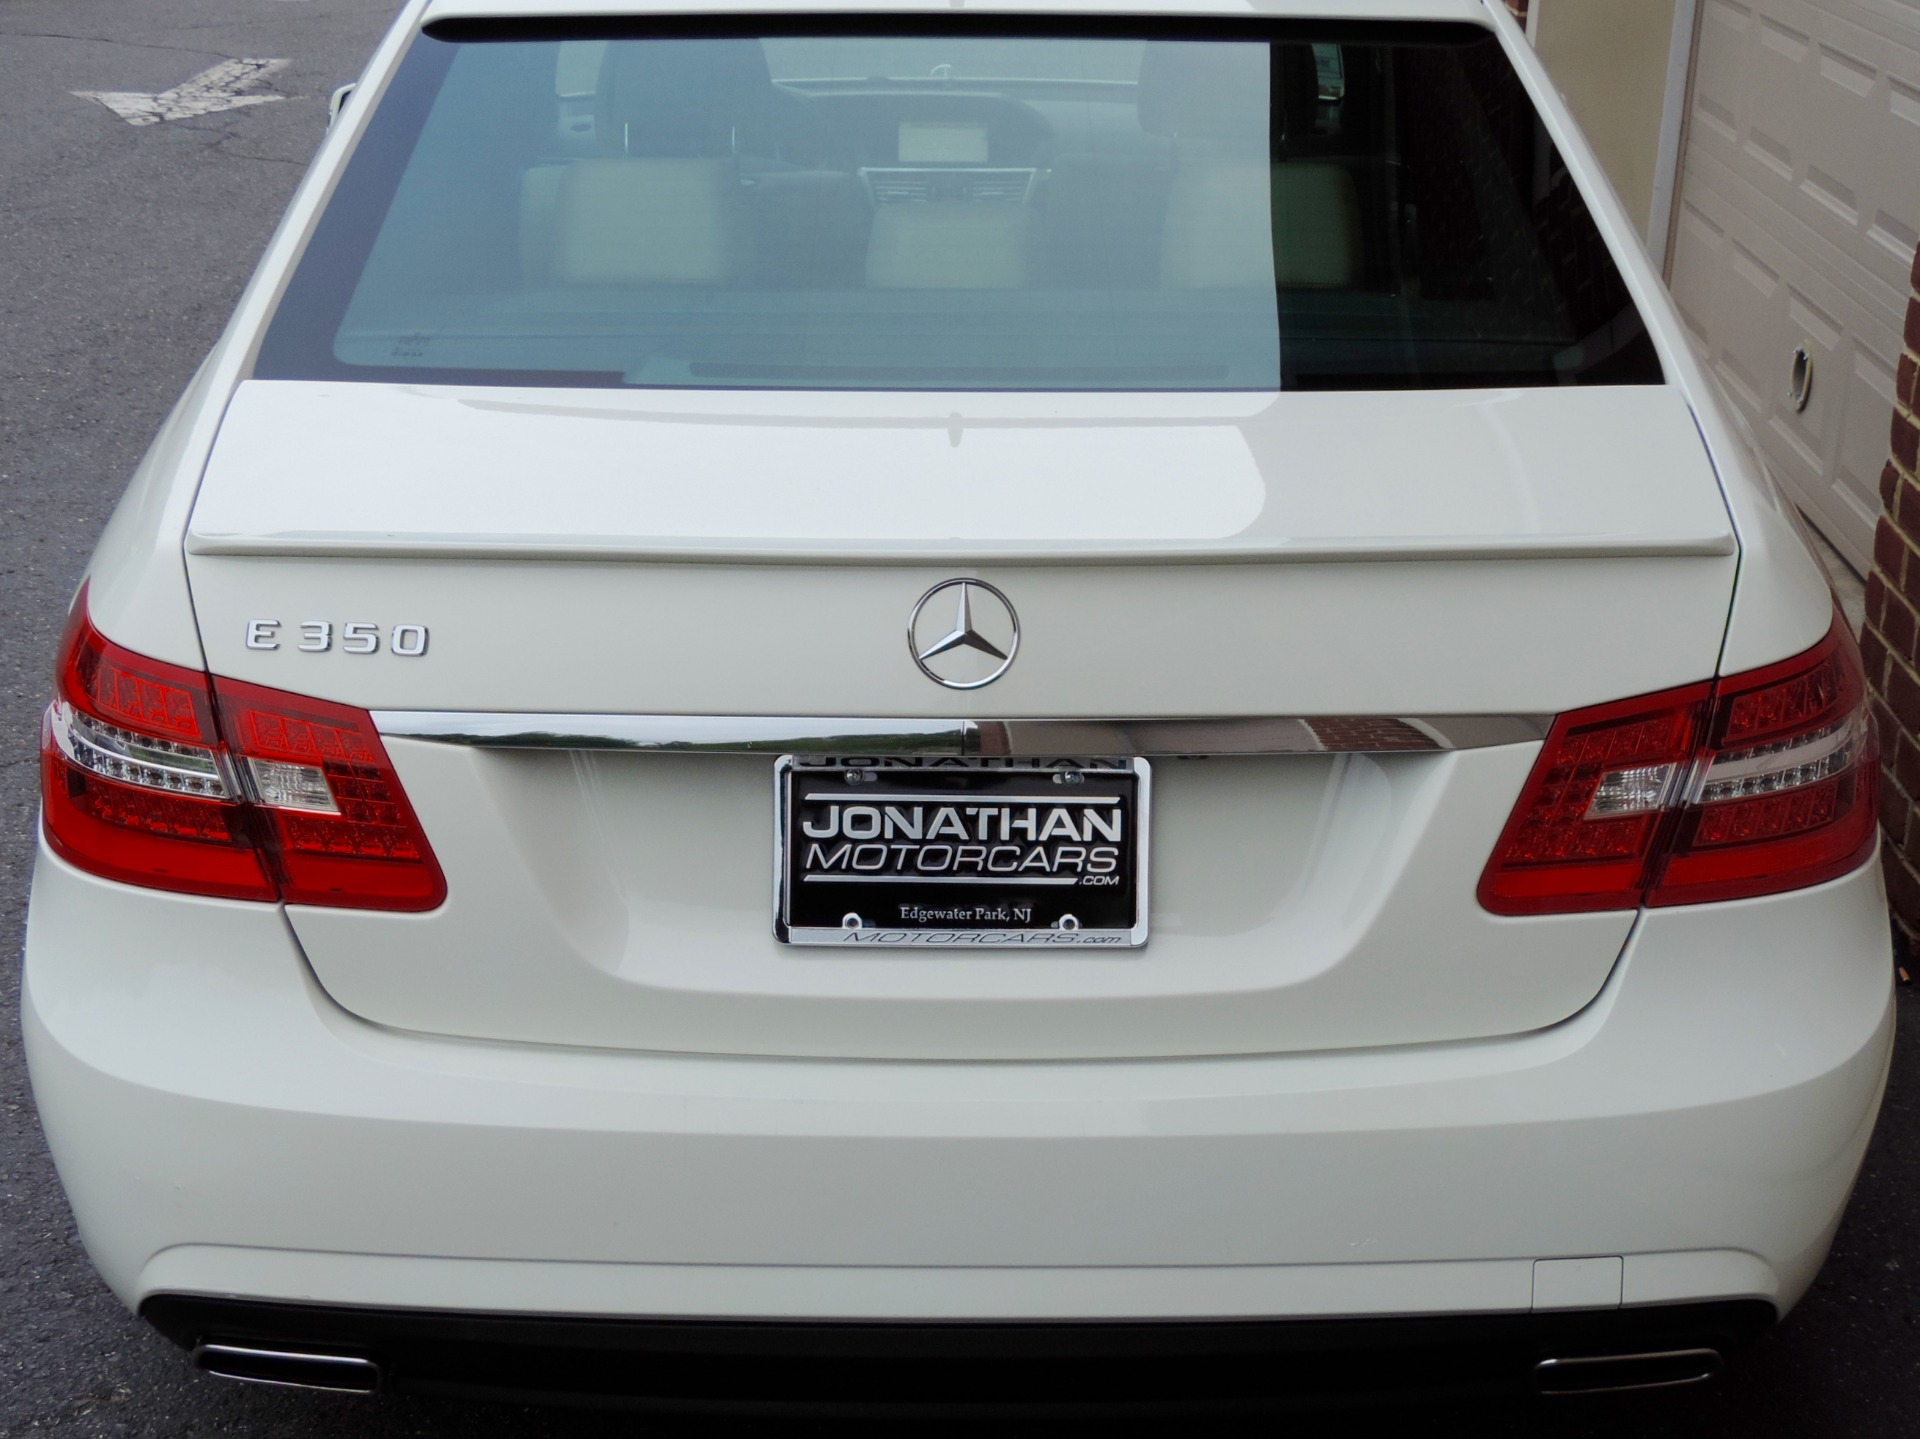 Mercedes-Benz E-Class: Setting and storing the parking position